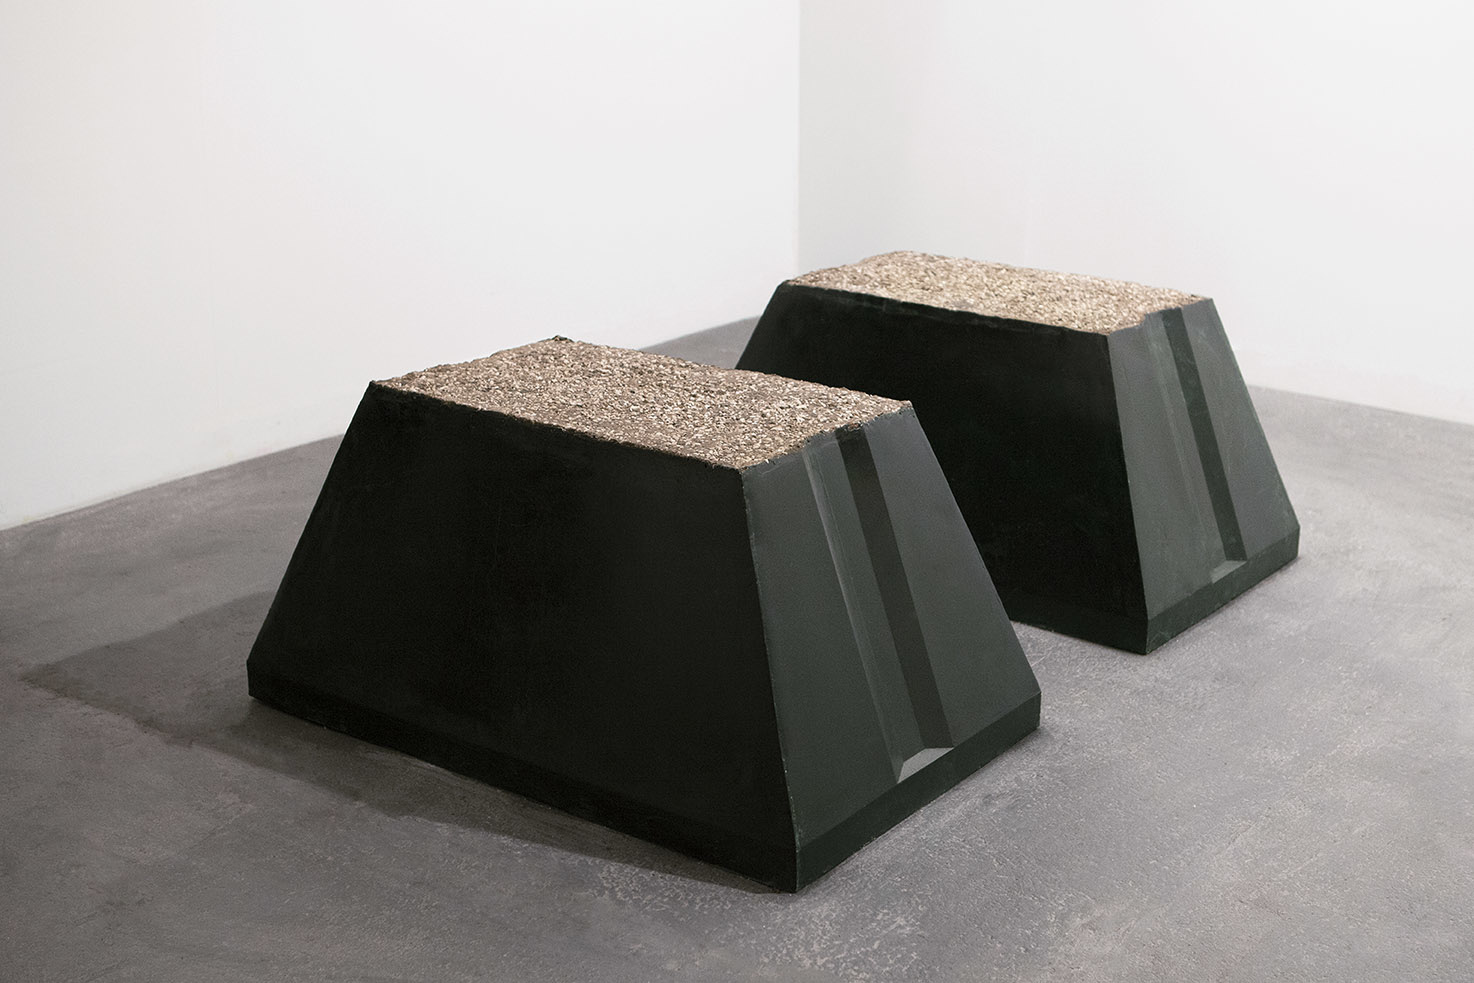 Andrea Zucchini, Double Cluster, 2012. Paraffin wax, sand, ash and stones.